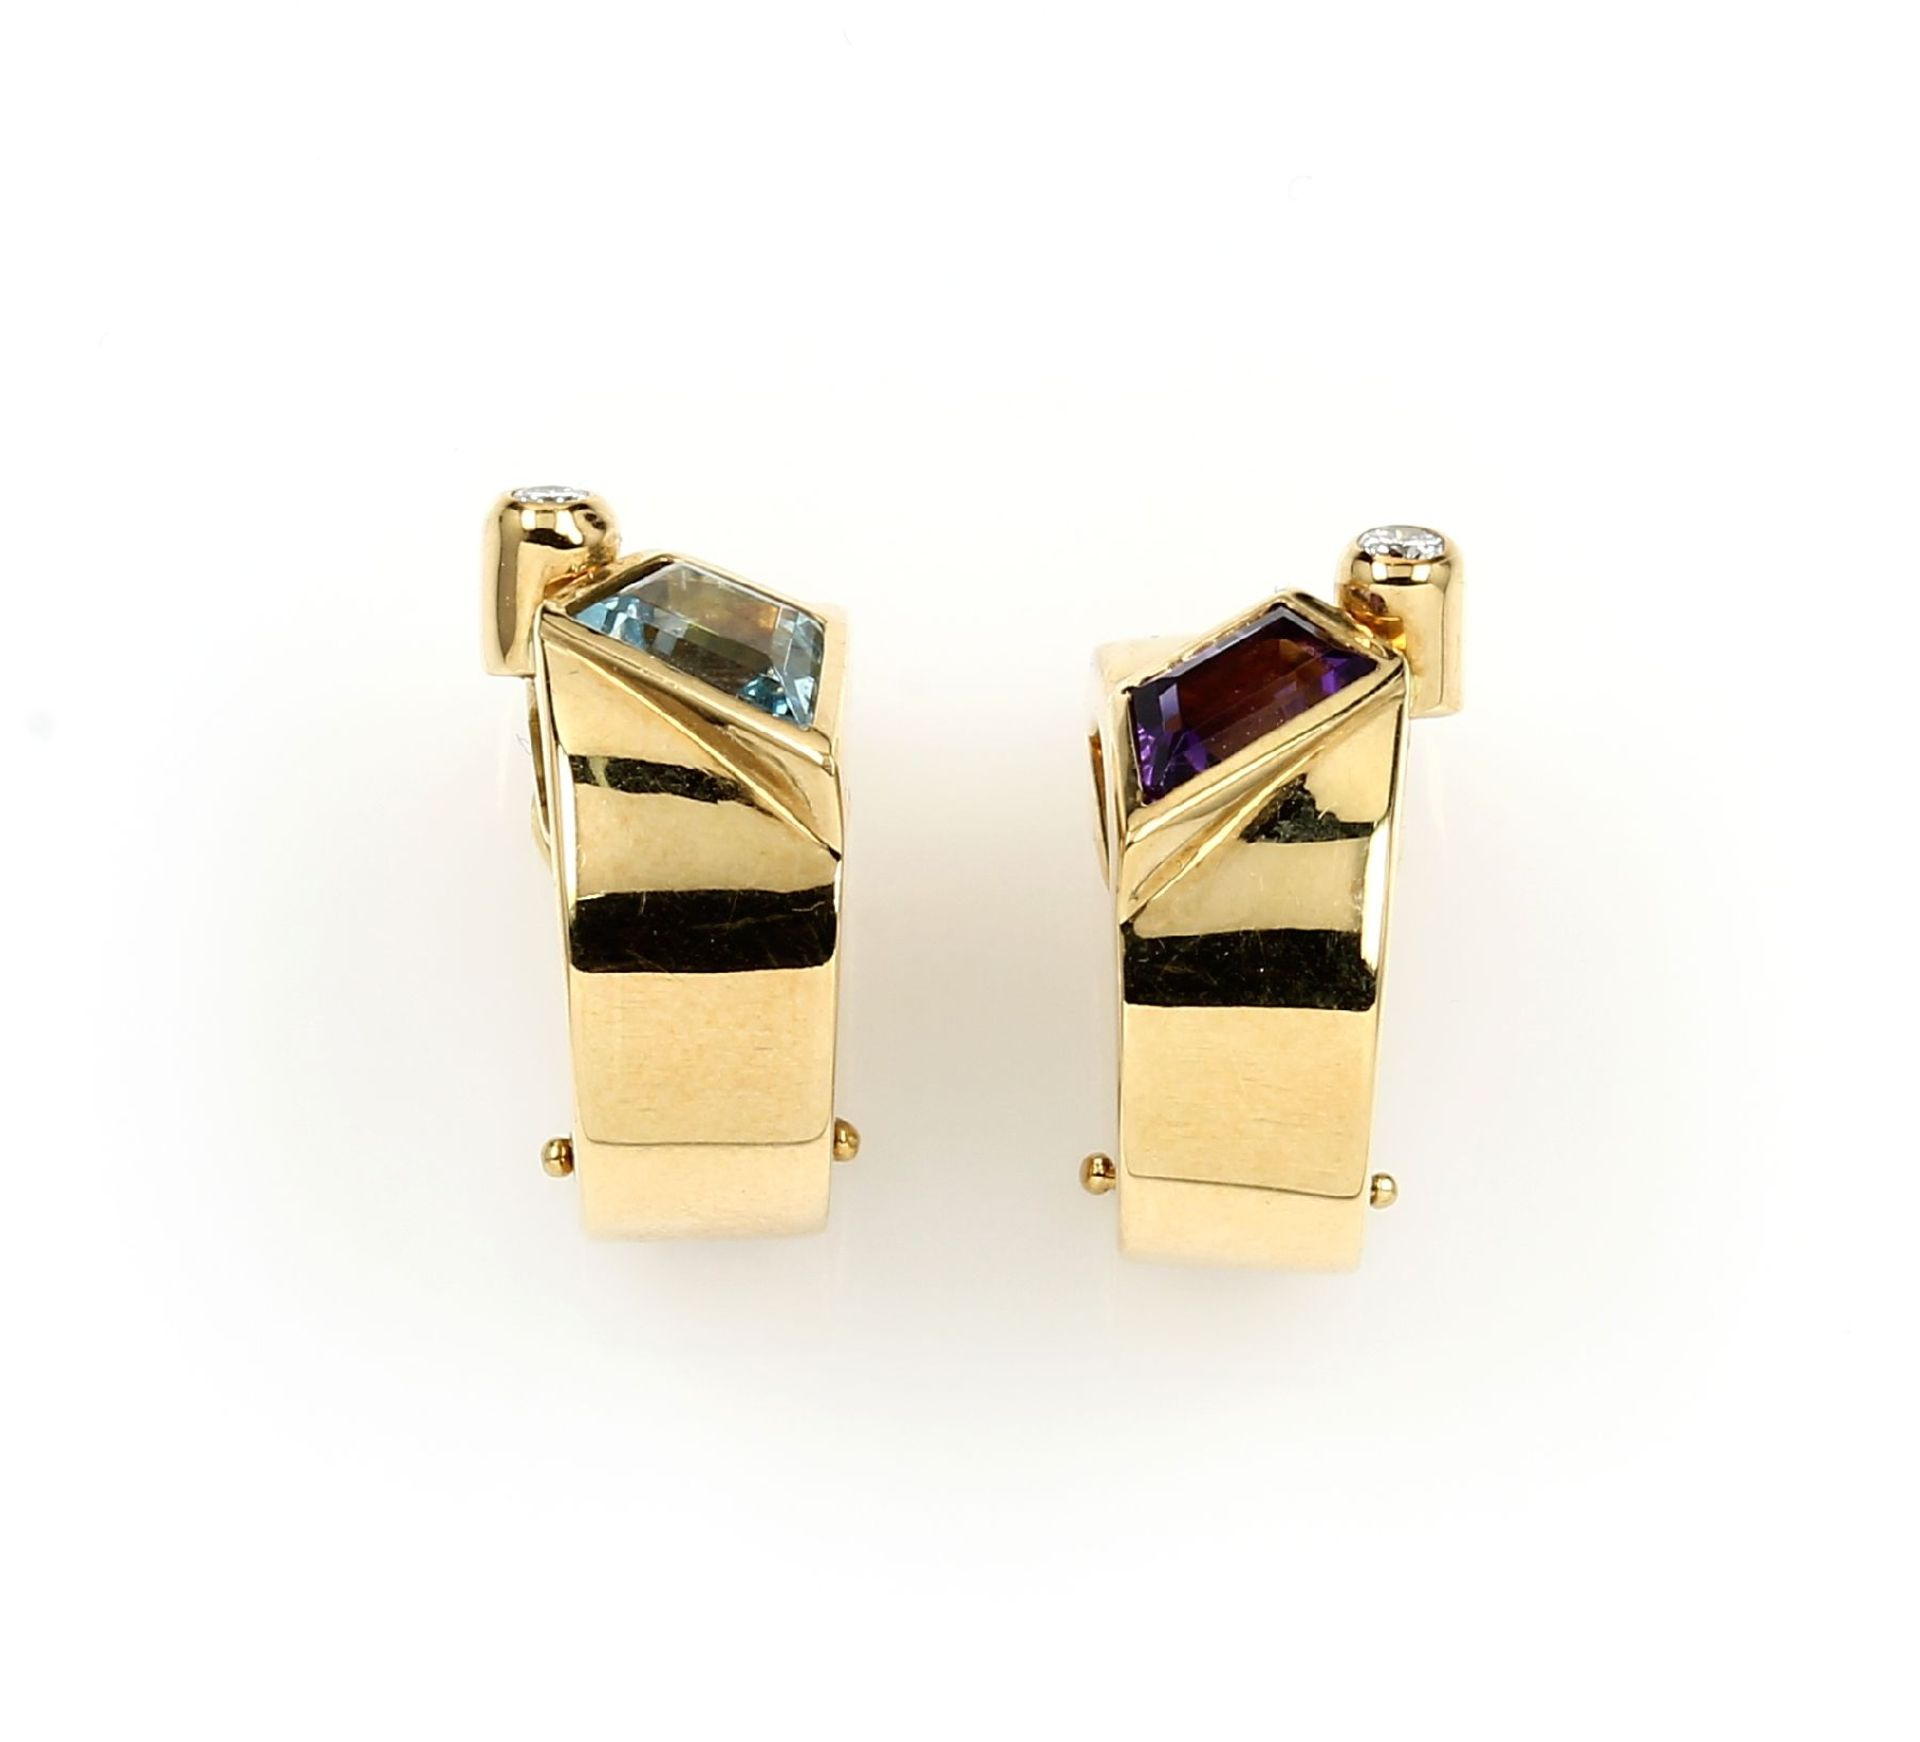 Los 61555 - Pair of 18 kt gold ear clips with coloured stones and brilliants , YG 750/000, bevelledamethyst